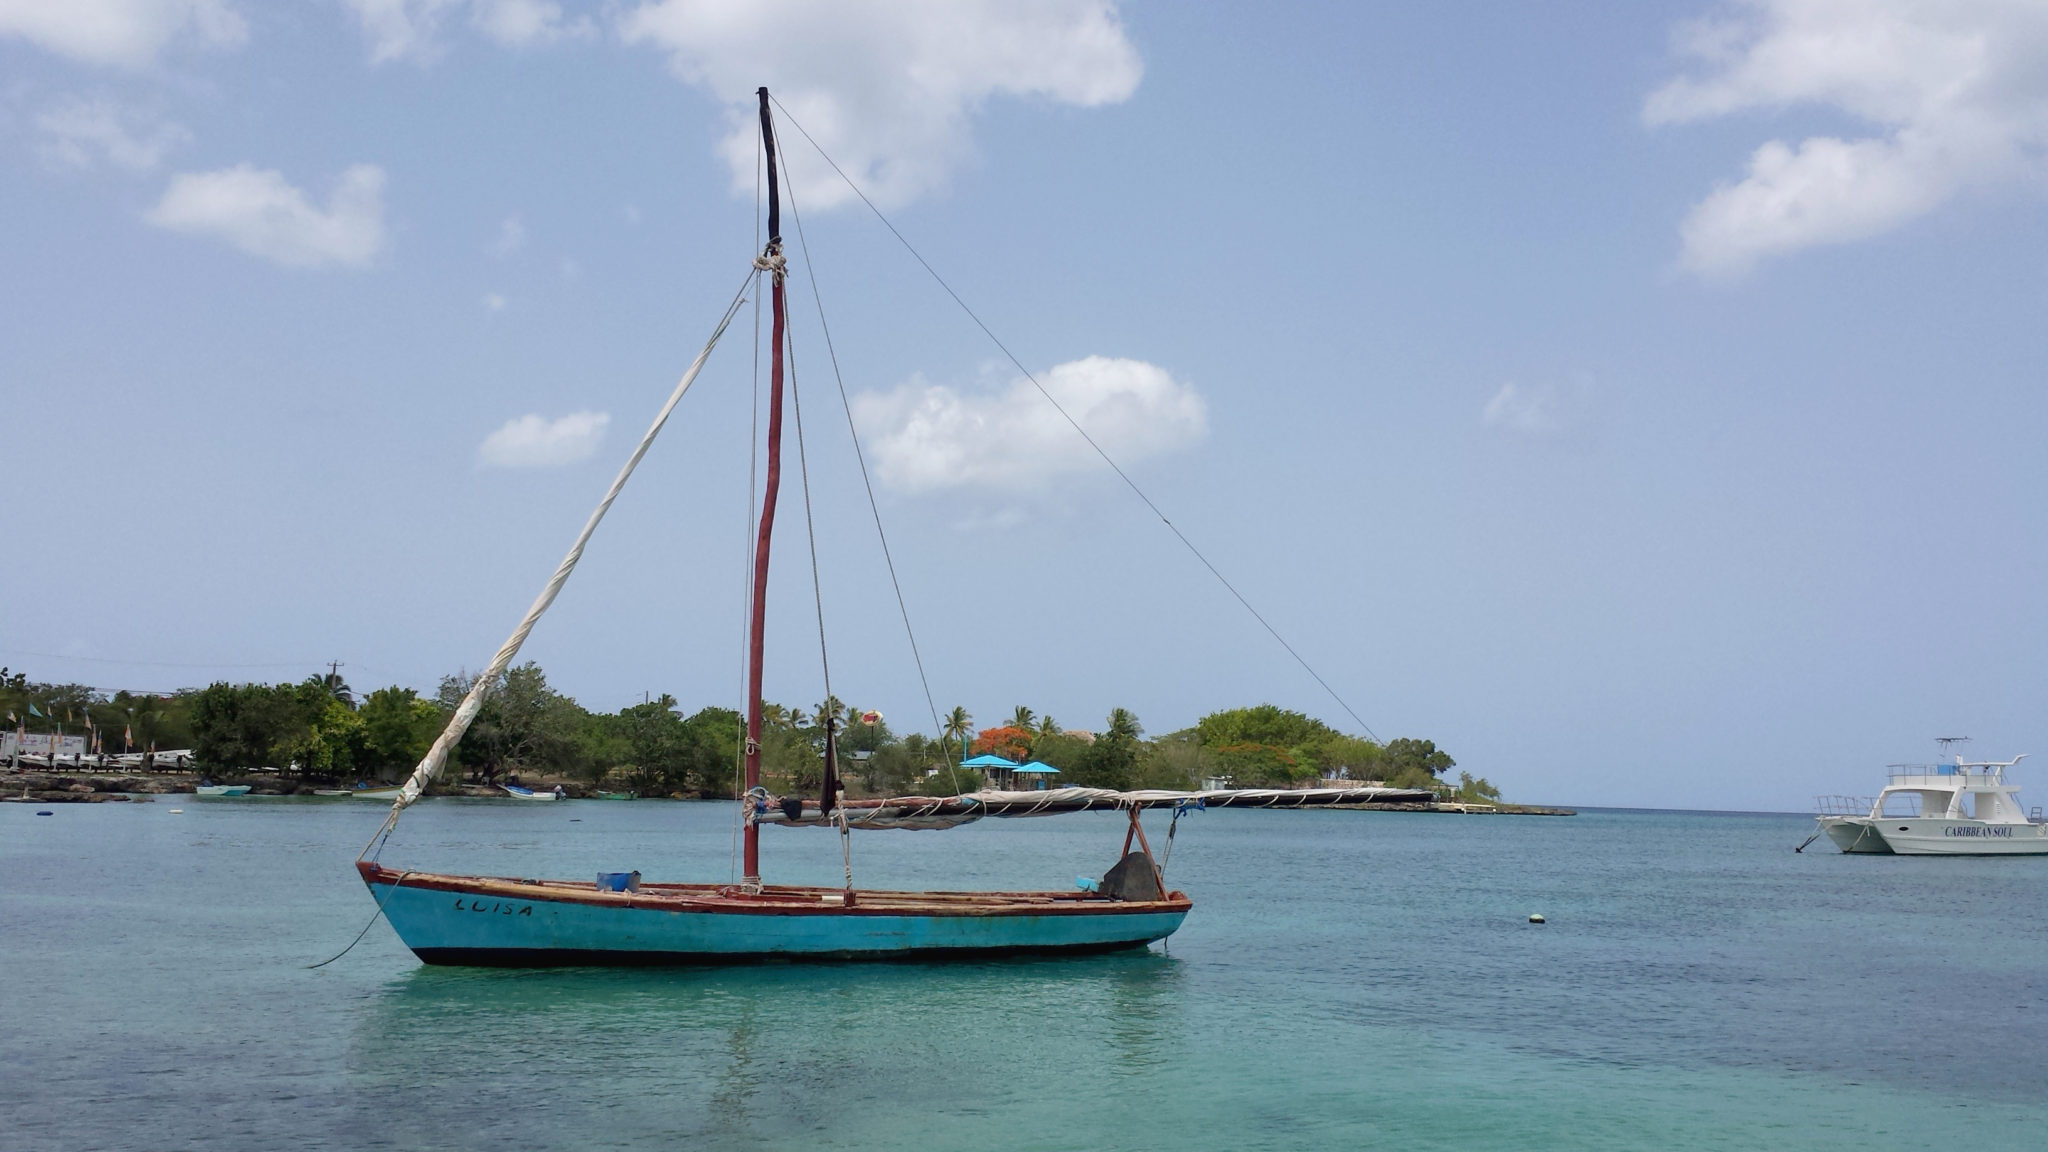 Republique_dominicaine_roadtrip_bayahibe_bateau_mer